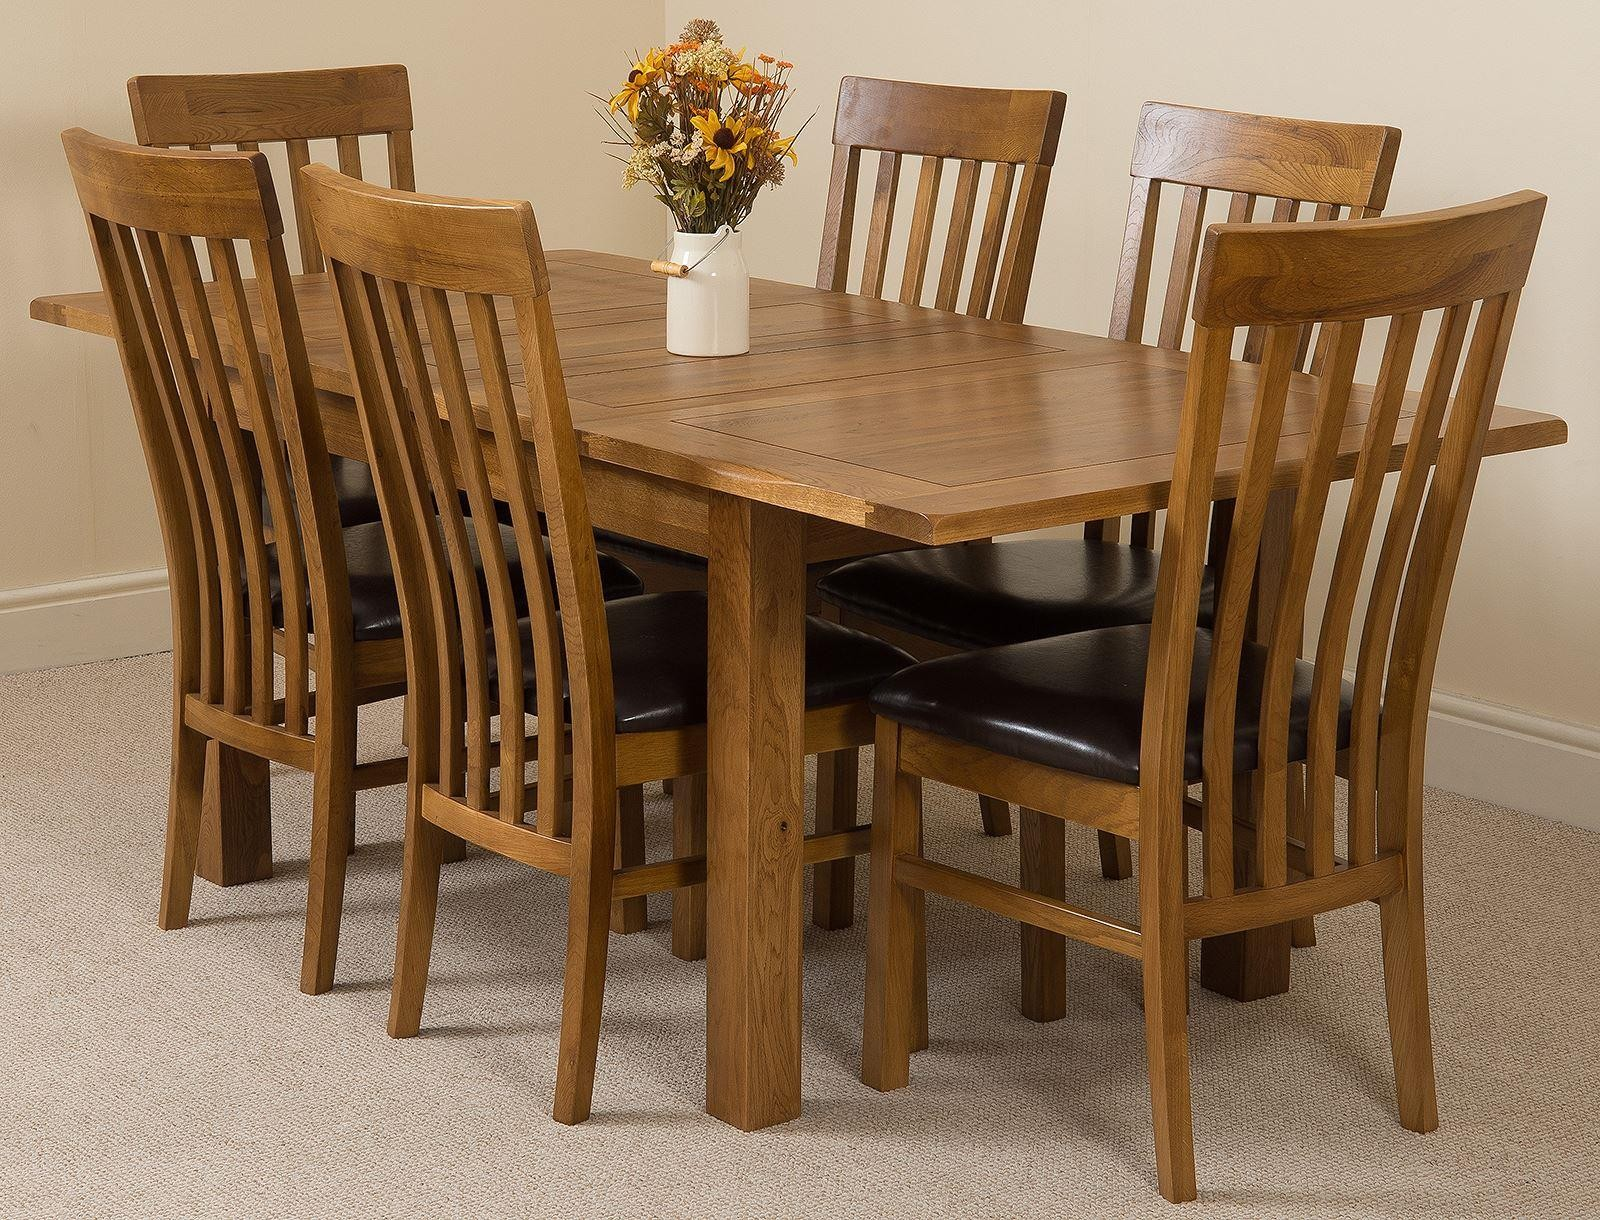 Cotswold Rustic Solid Oak 132cm-198cm Extending Farmhouse Dining Table with 6 Harvard Dining Chairs [Rustic Oak and Brown Leather]